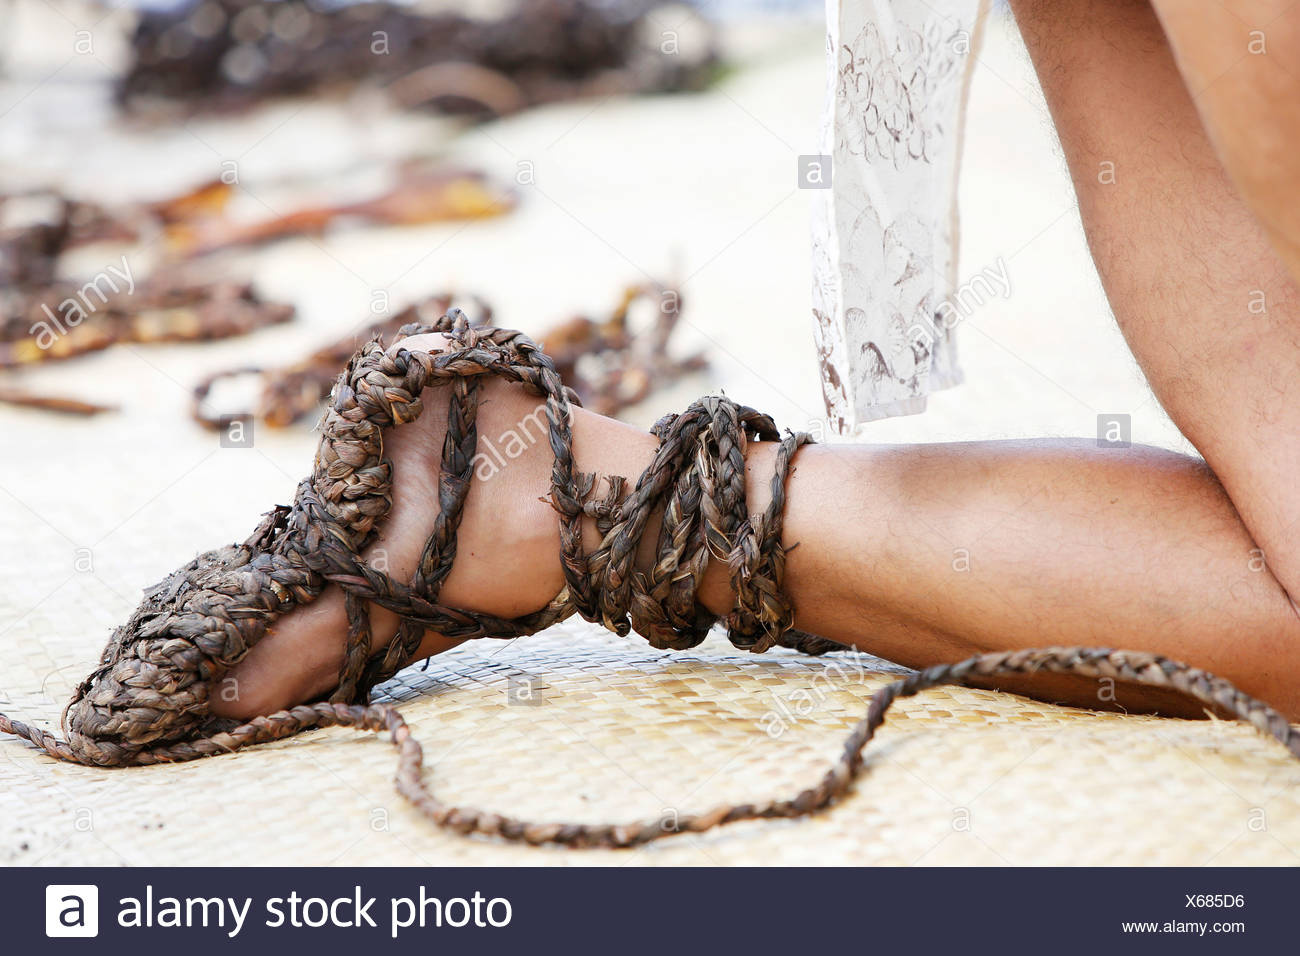 Sandals made of Ti-leaves, Cabbage Palm, Good Luck Plant, Palm Lily, Ti Plant, Kī, La'i (Cordyline fruticosa), Big Island - Stock Image